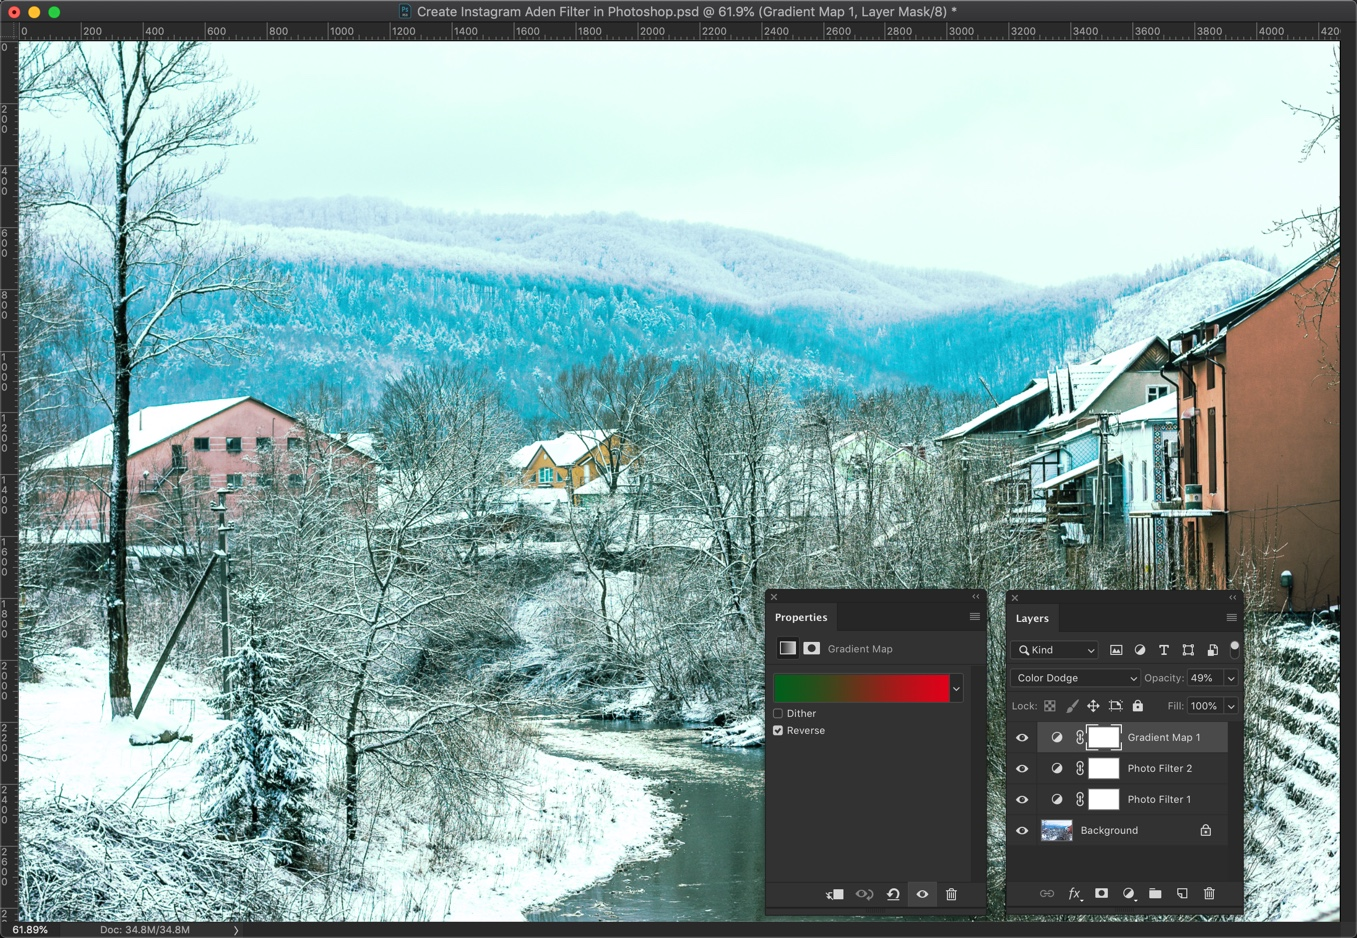 9 - [Action Included] Create Instagram Aden Filter in Photoshop